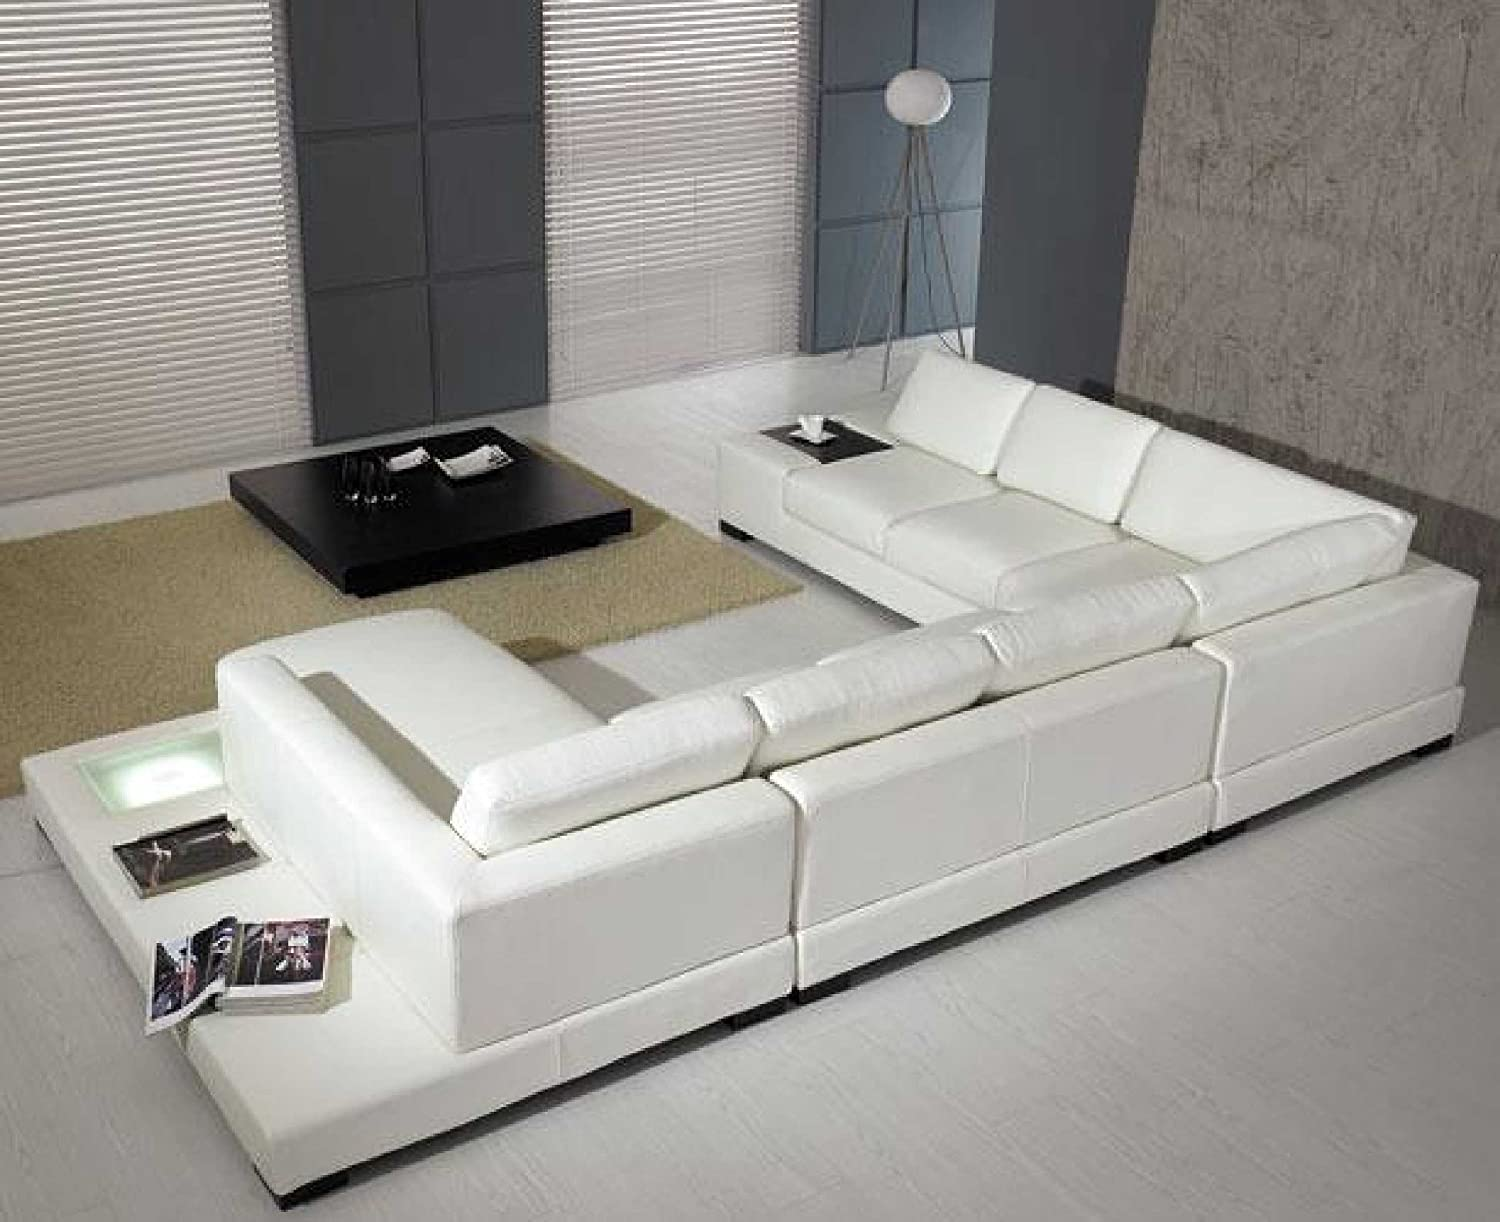 Superieur Amazon.com: T35   White Bonded Leather Sectional Sofa Set With Light:  Kitchen U0026 Dining